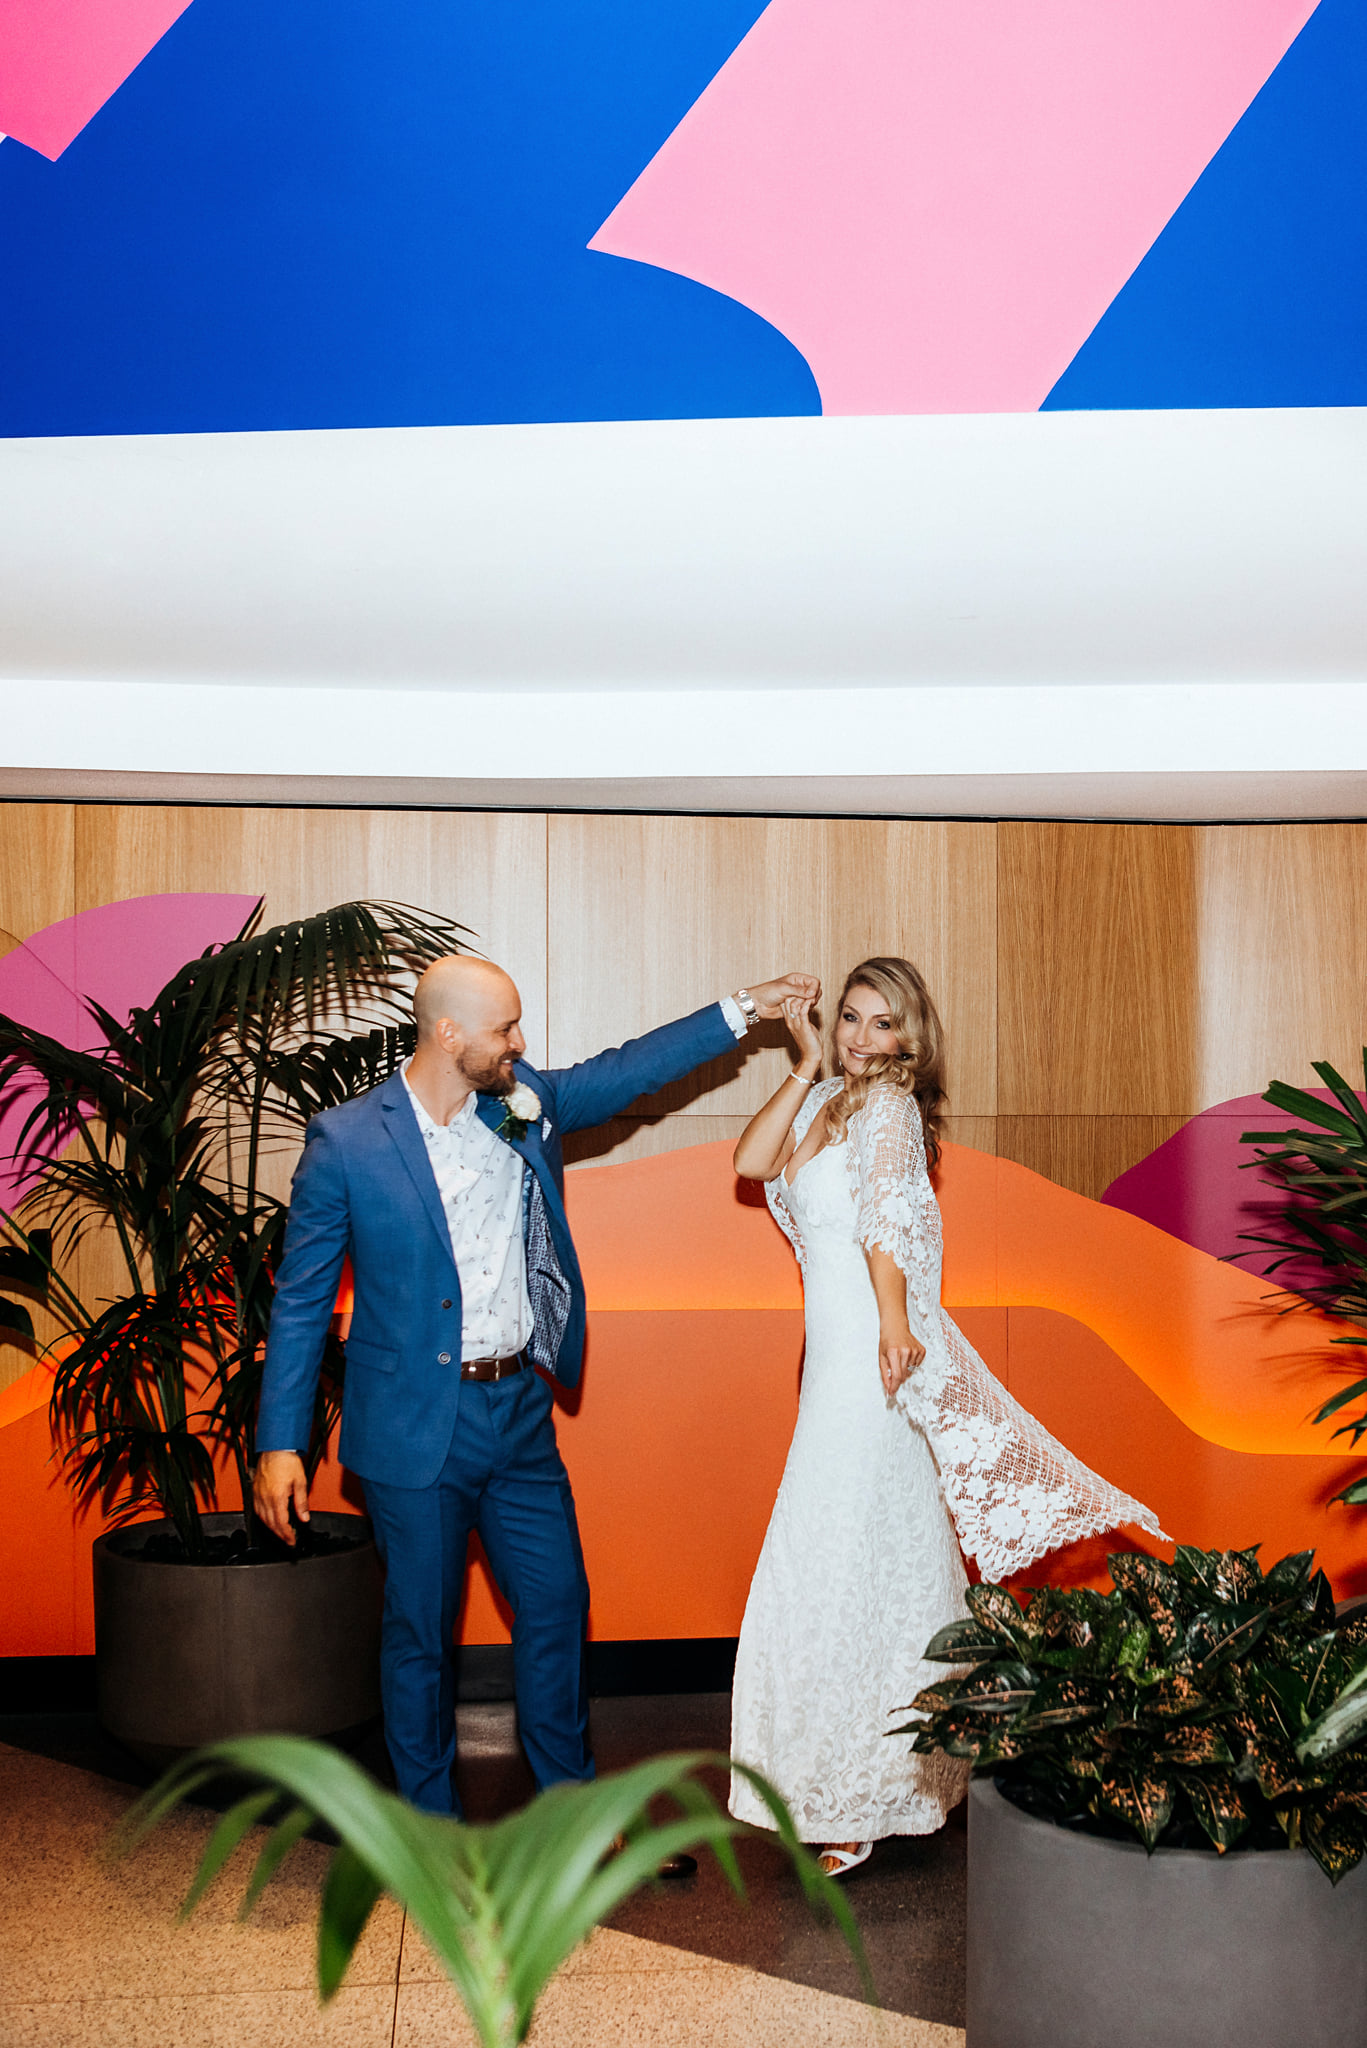 W Hotel Brisbane wedding photography